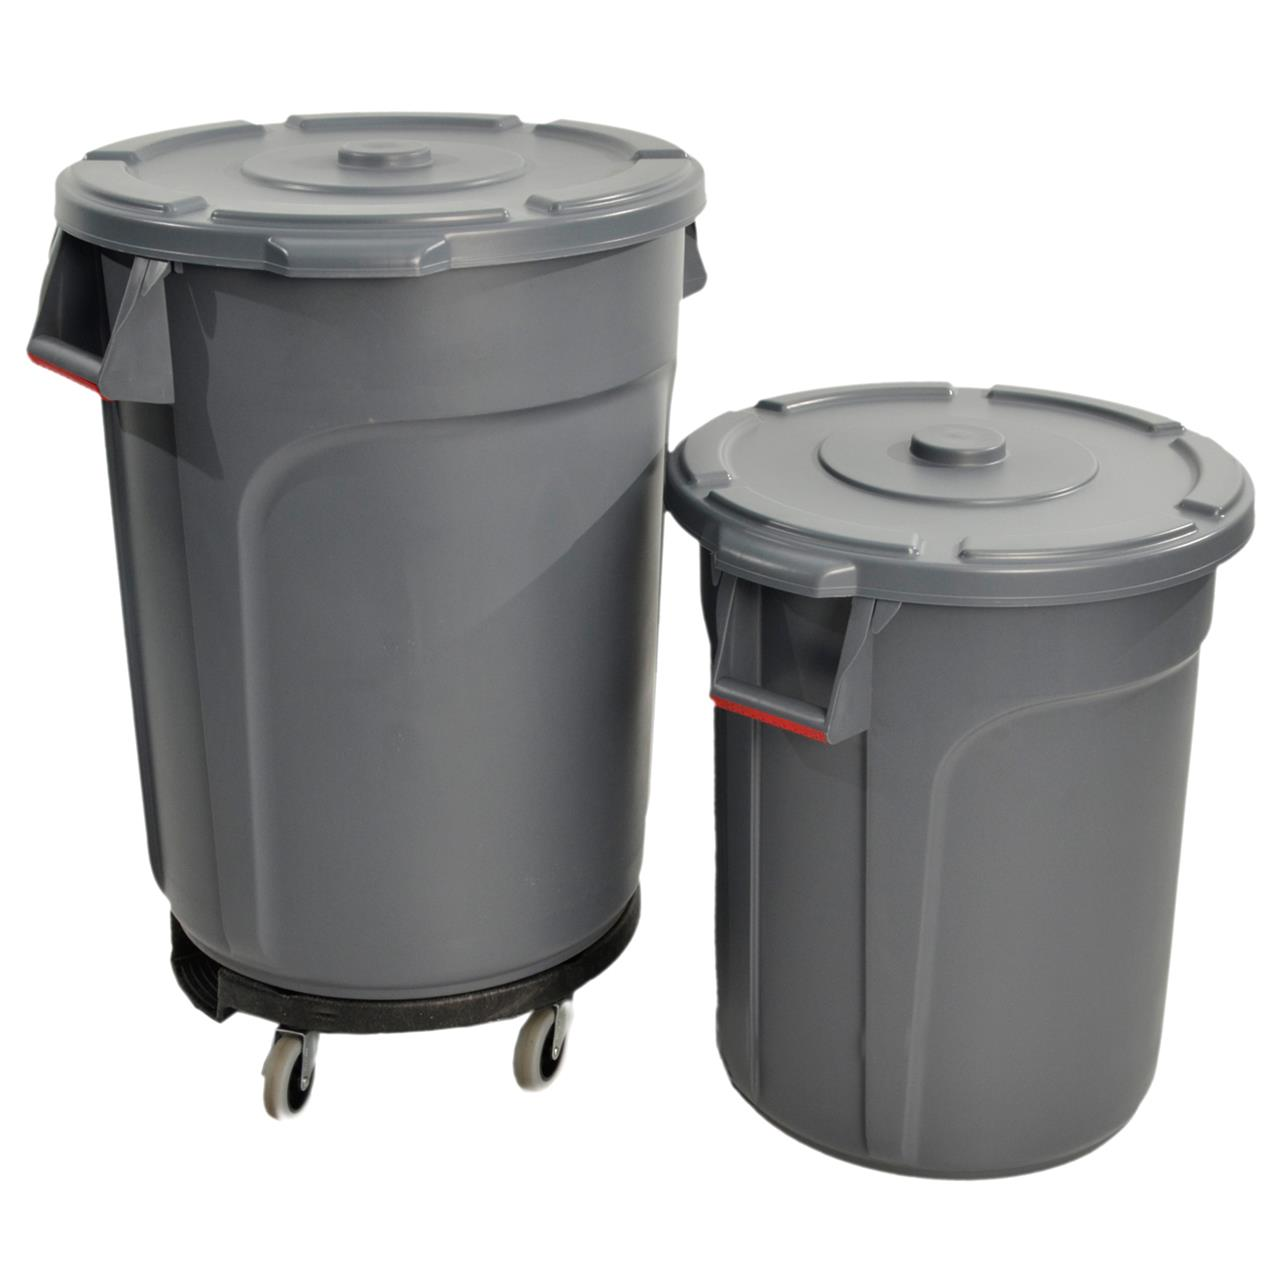 TRUST Commercial® Thor Round Bins